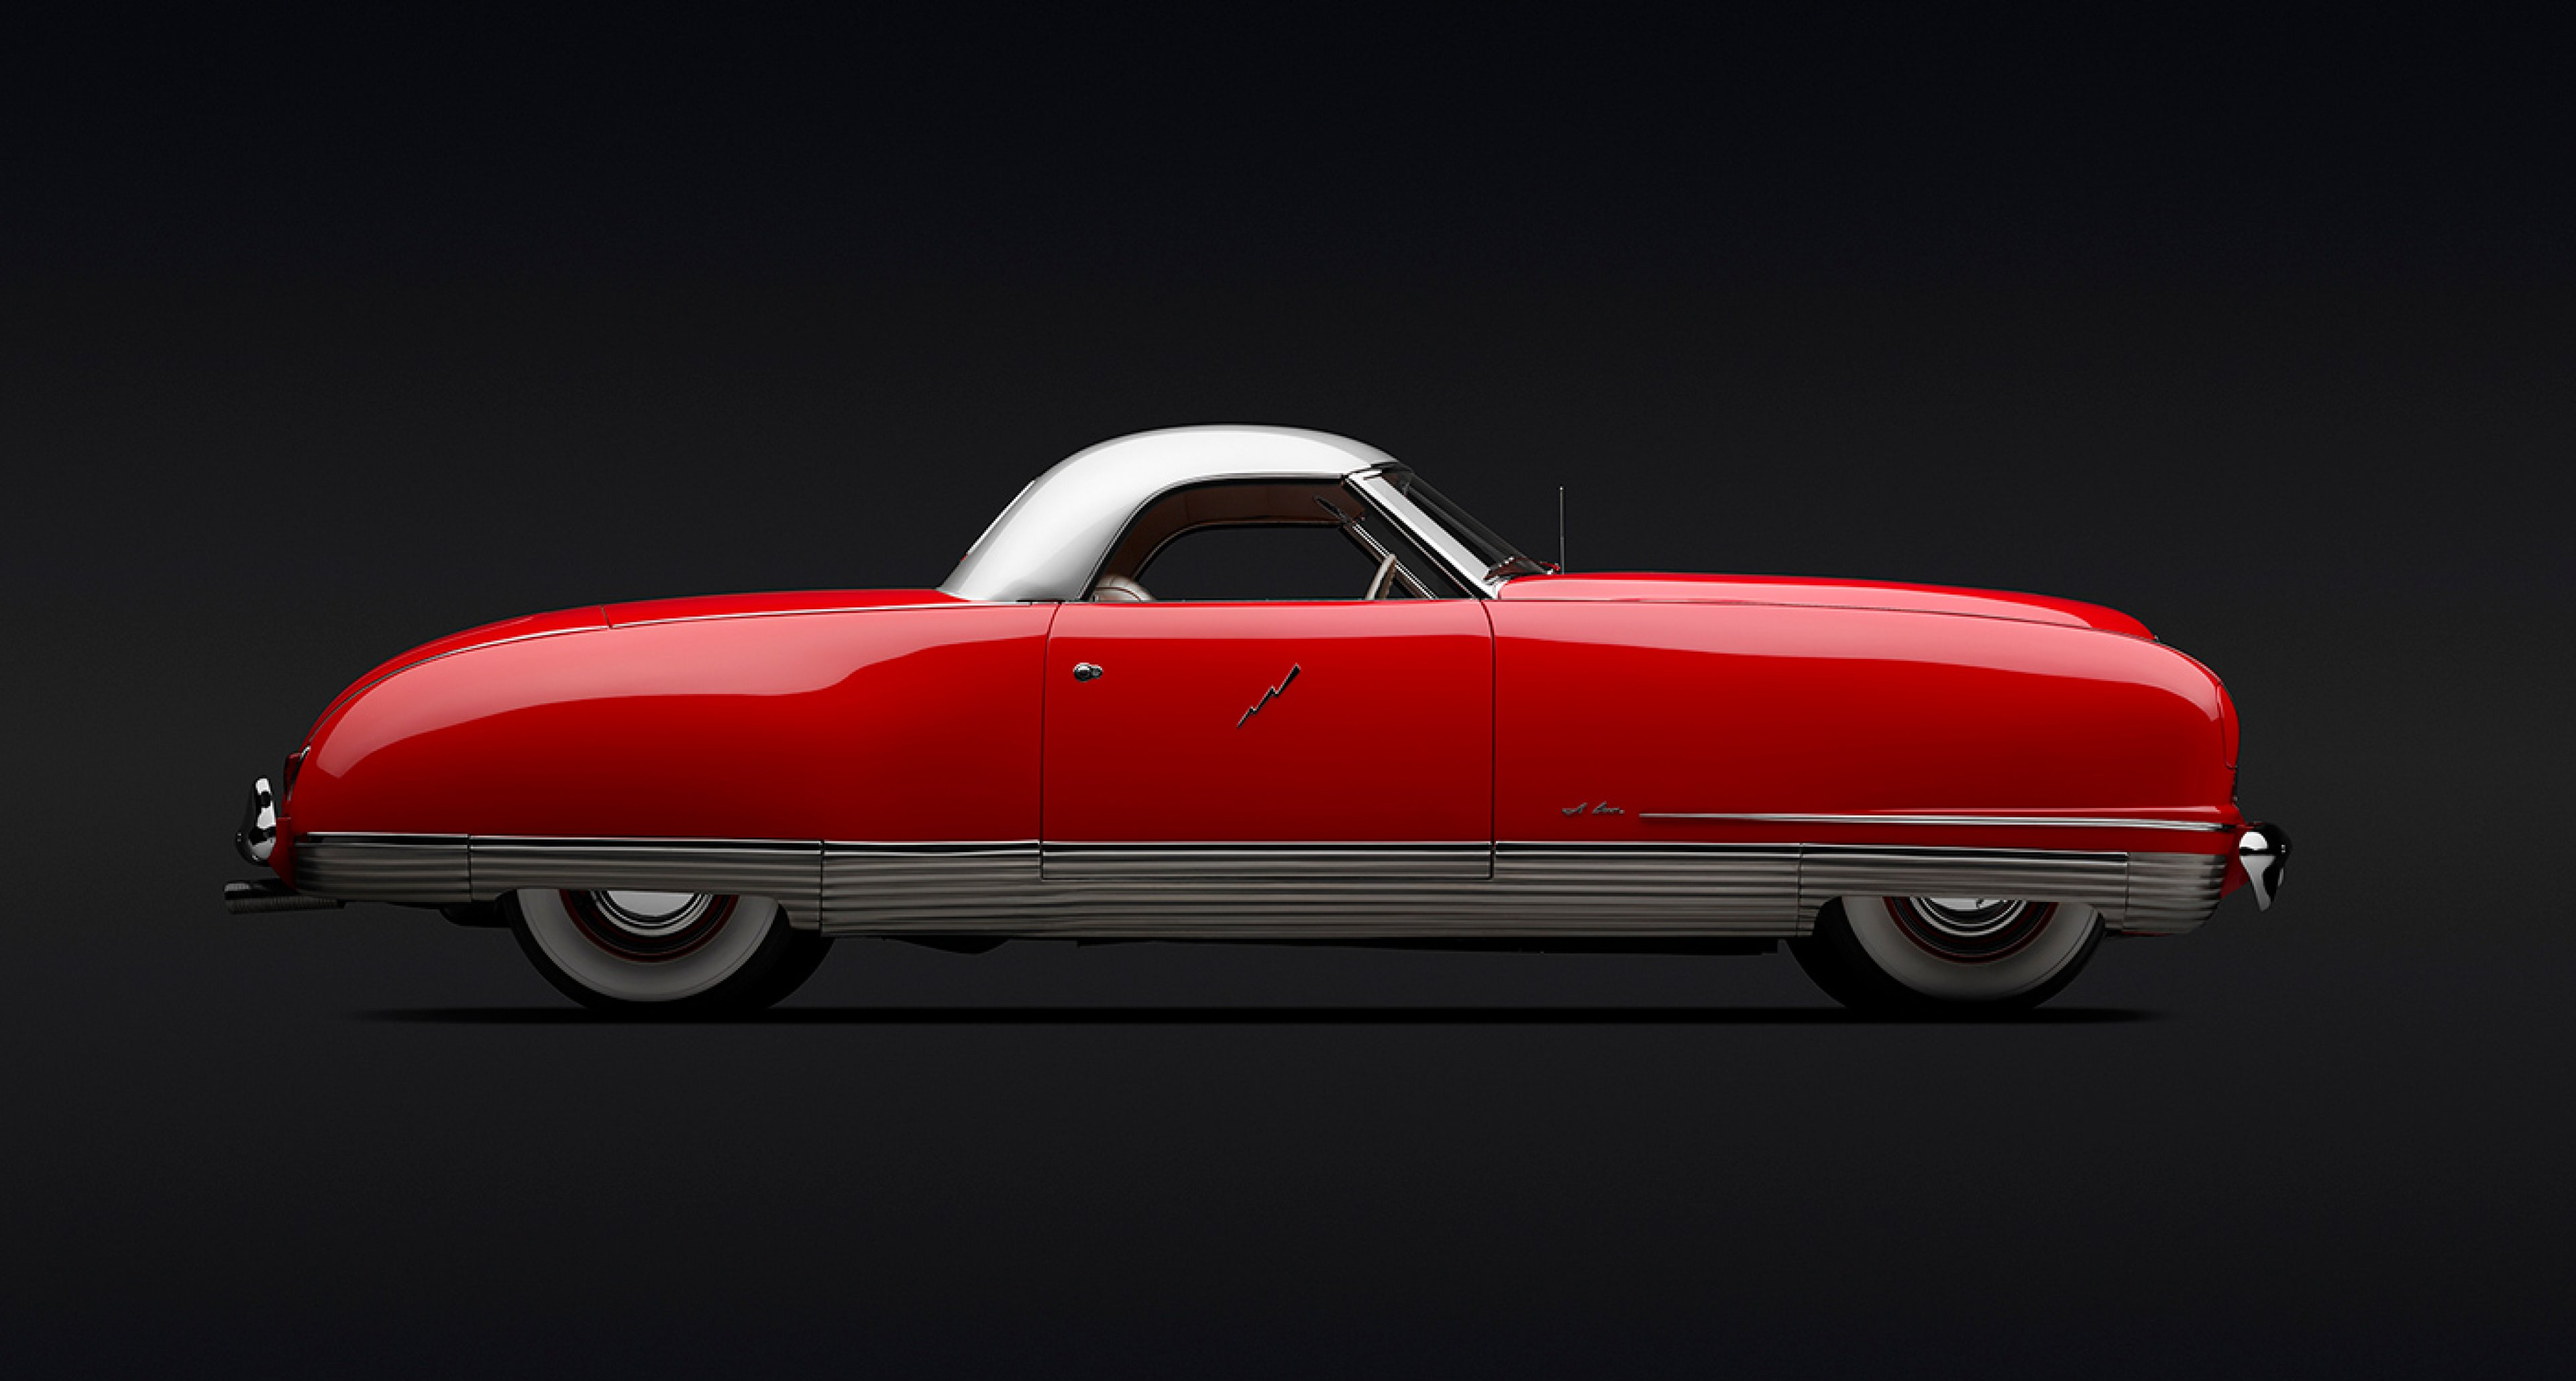 Chrysler Thunderbolt, 1941, Collection of Roger Willbanks; Photo © 2016 Michael Furman